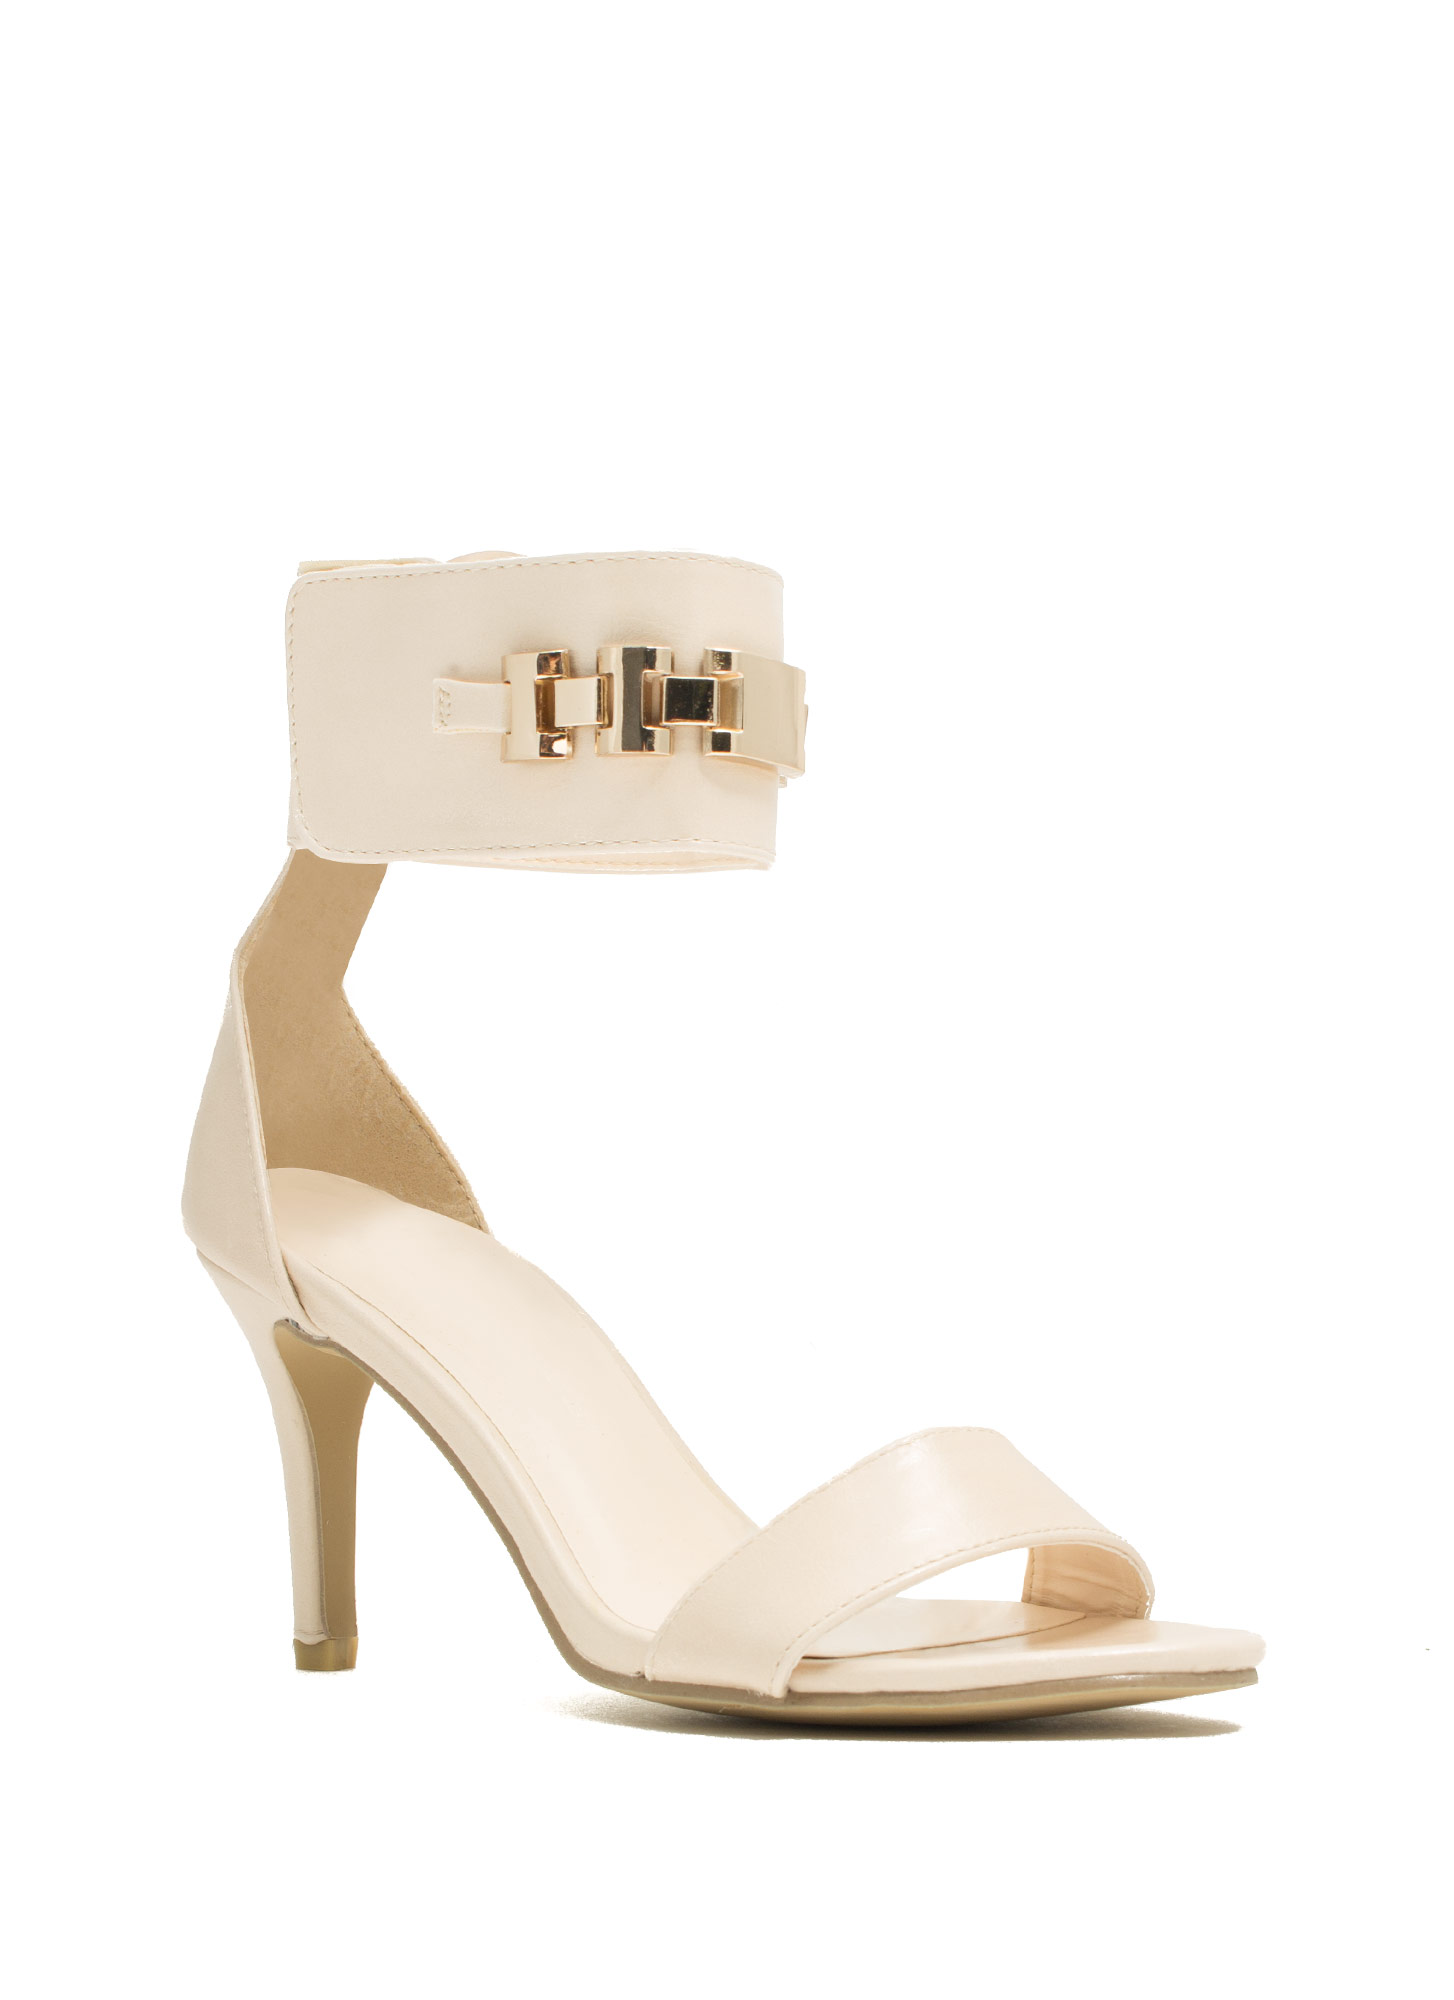 Show Your ID Chain Heels BEIGE